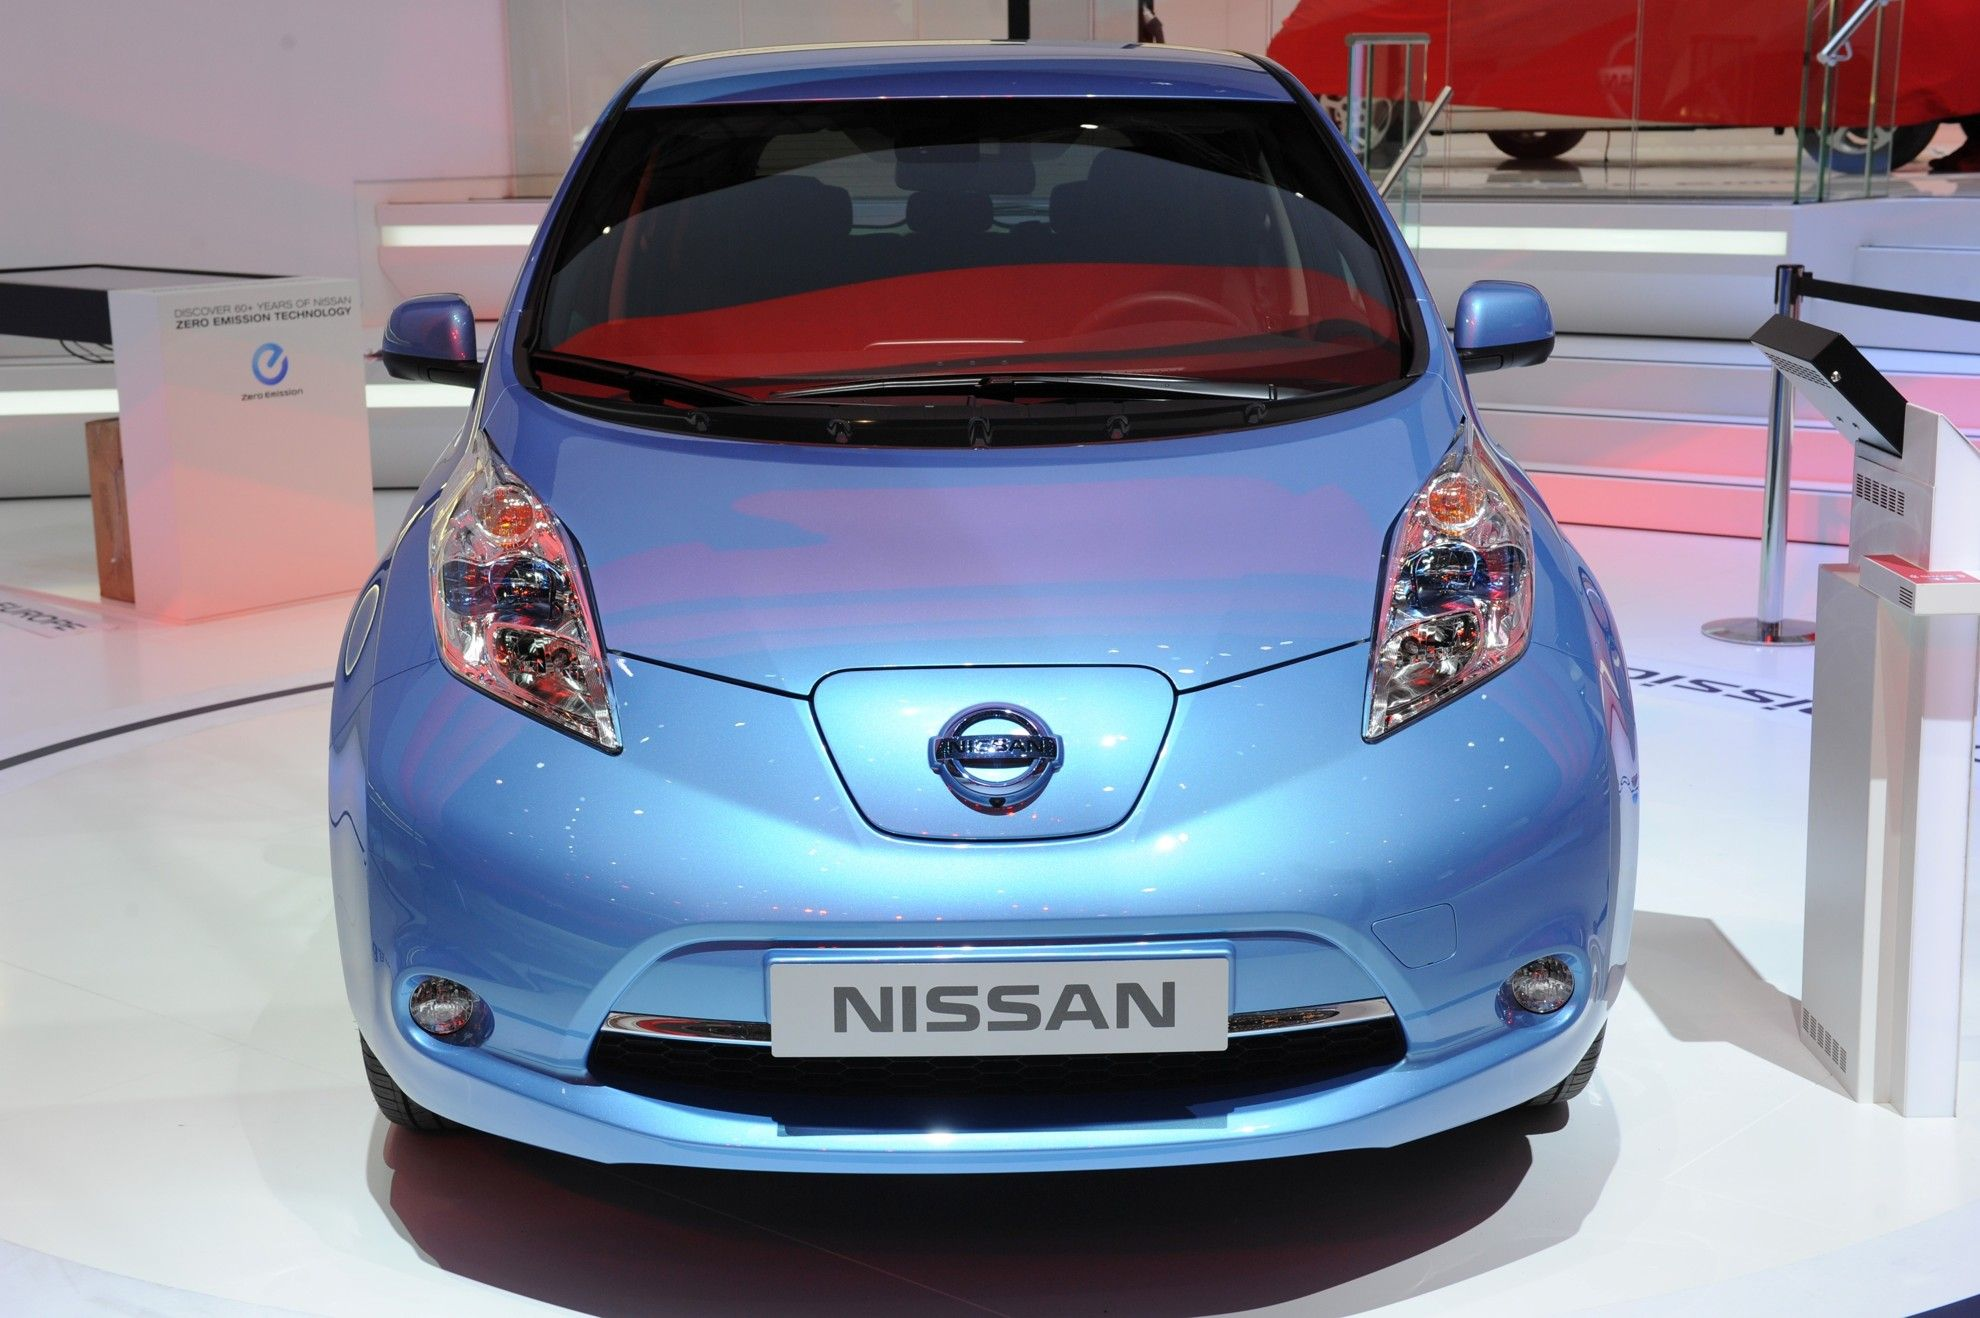 THE NEW NISSAN LEAF ARRIVES AT THE GENEVA MOTOR SHOW 2013